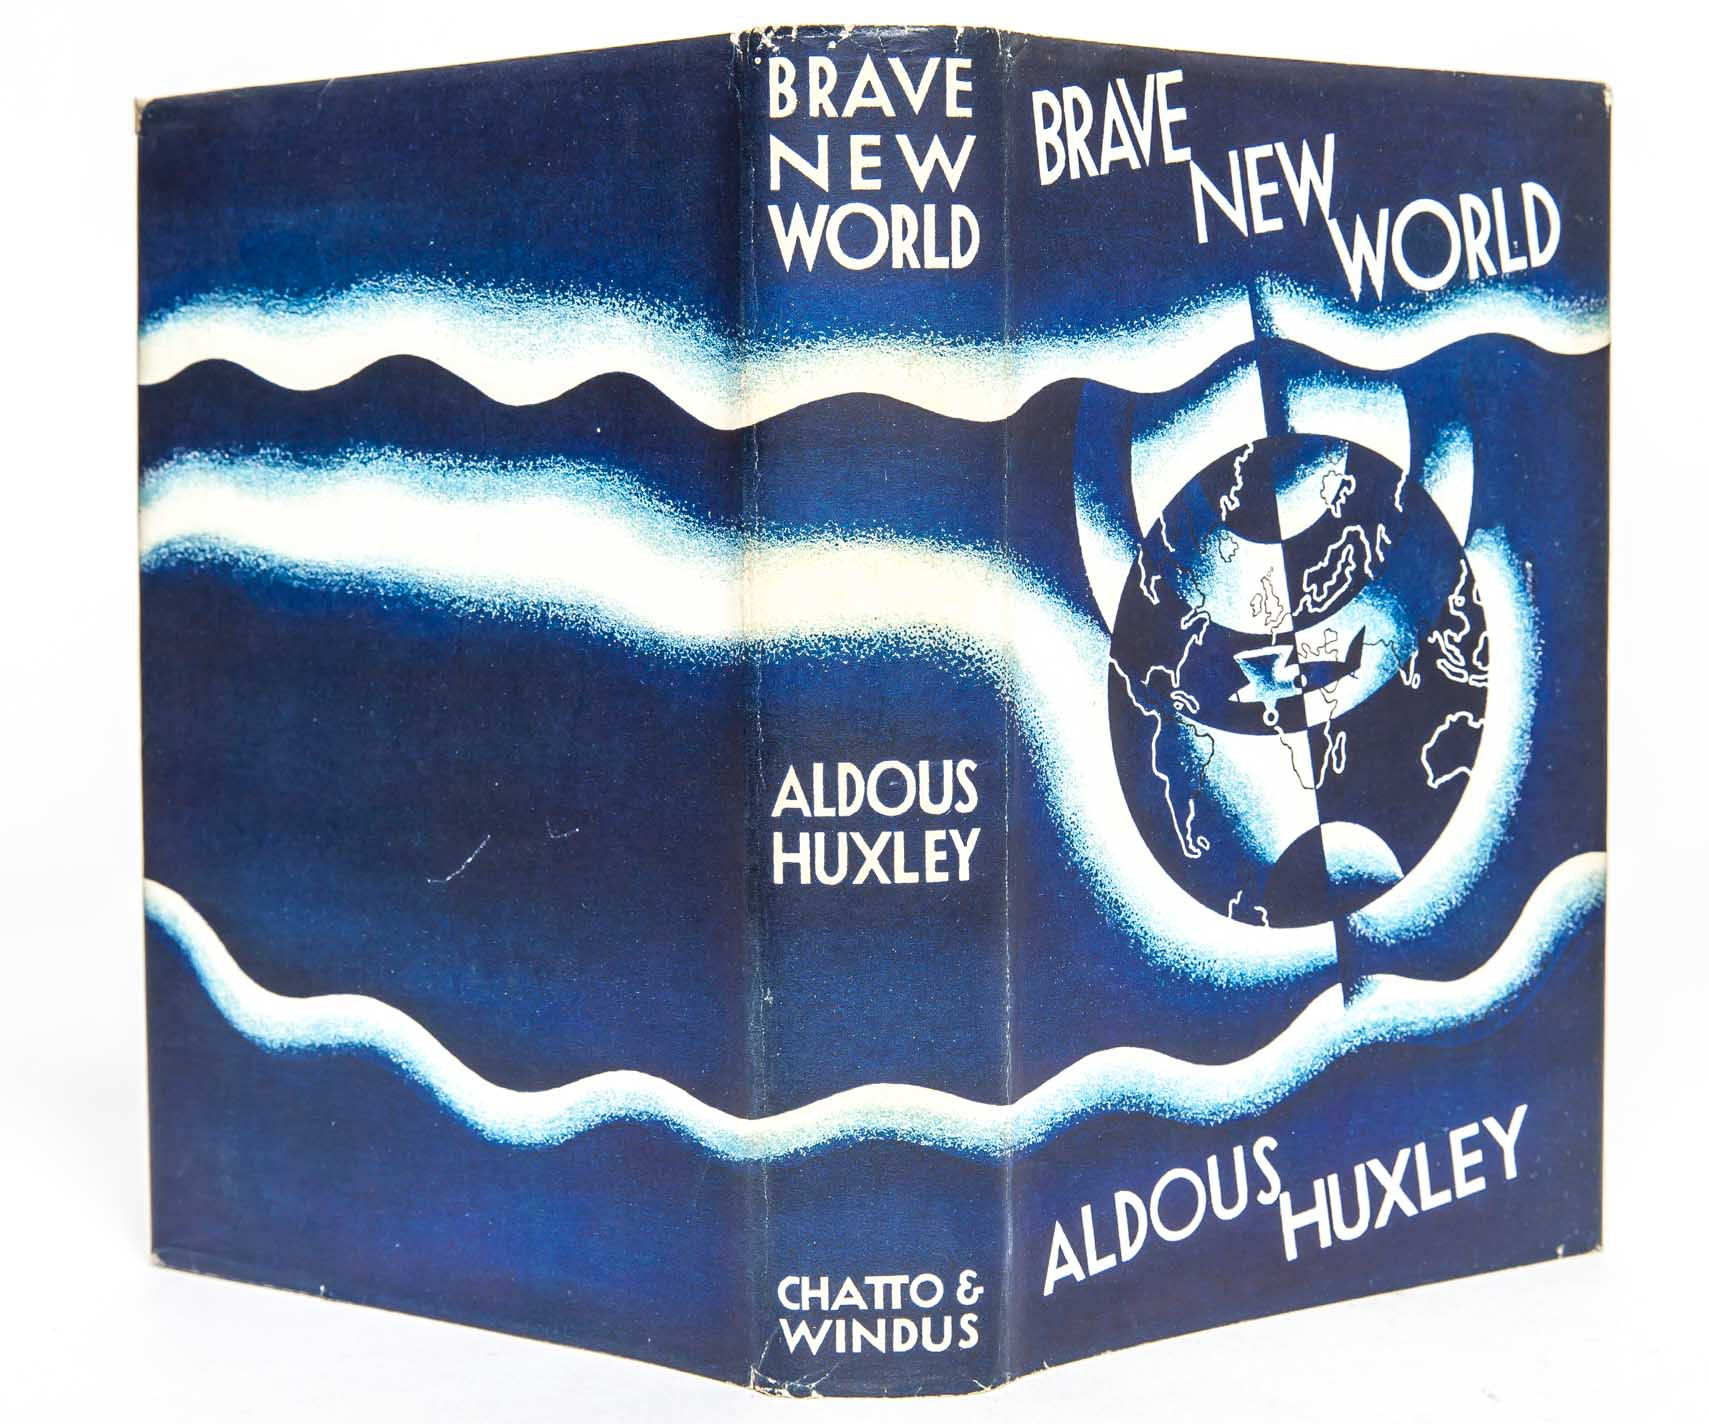 a literary analysis of a brave new world by h g wells Hg wells essay examples  a literary analysis of a brave new world by h g wells 1,085 words 2 pages a literary analysis of the time machine by h g wells .